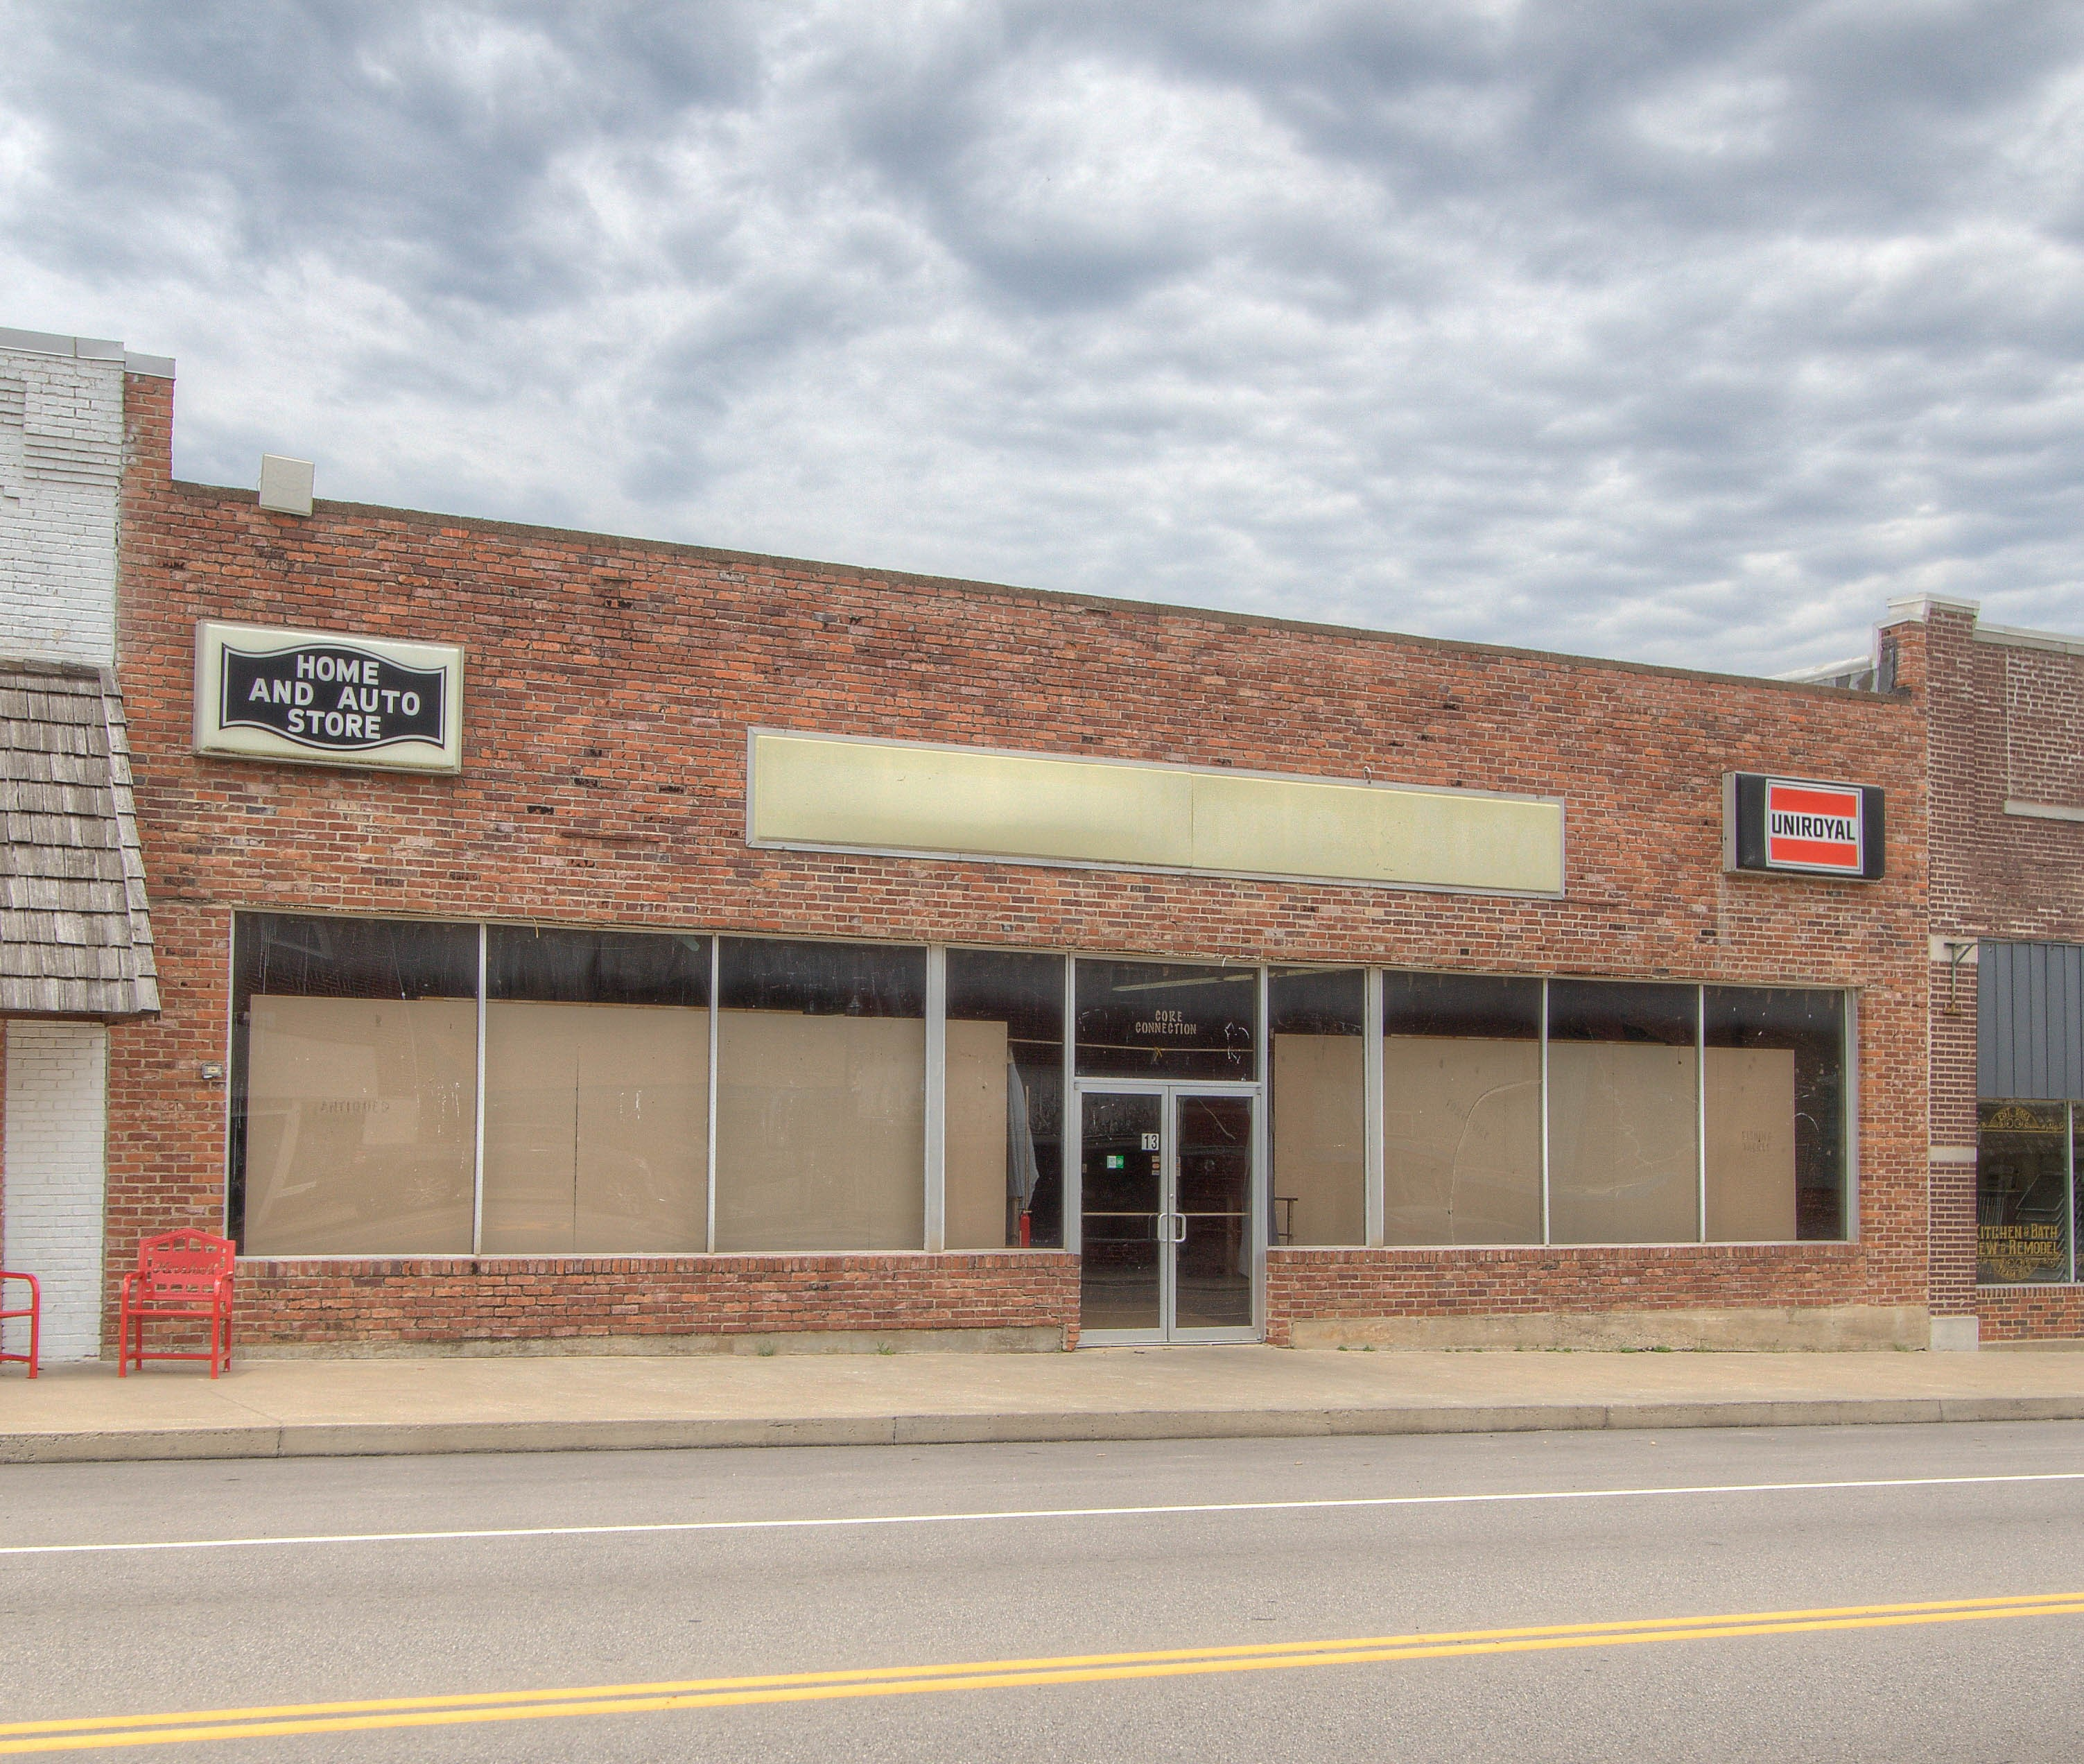 110 S Broadway Ave, Haskell, OK 74436, Haskell, Oklahoma 74436